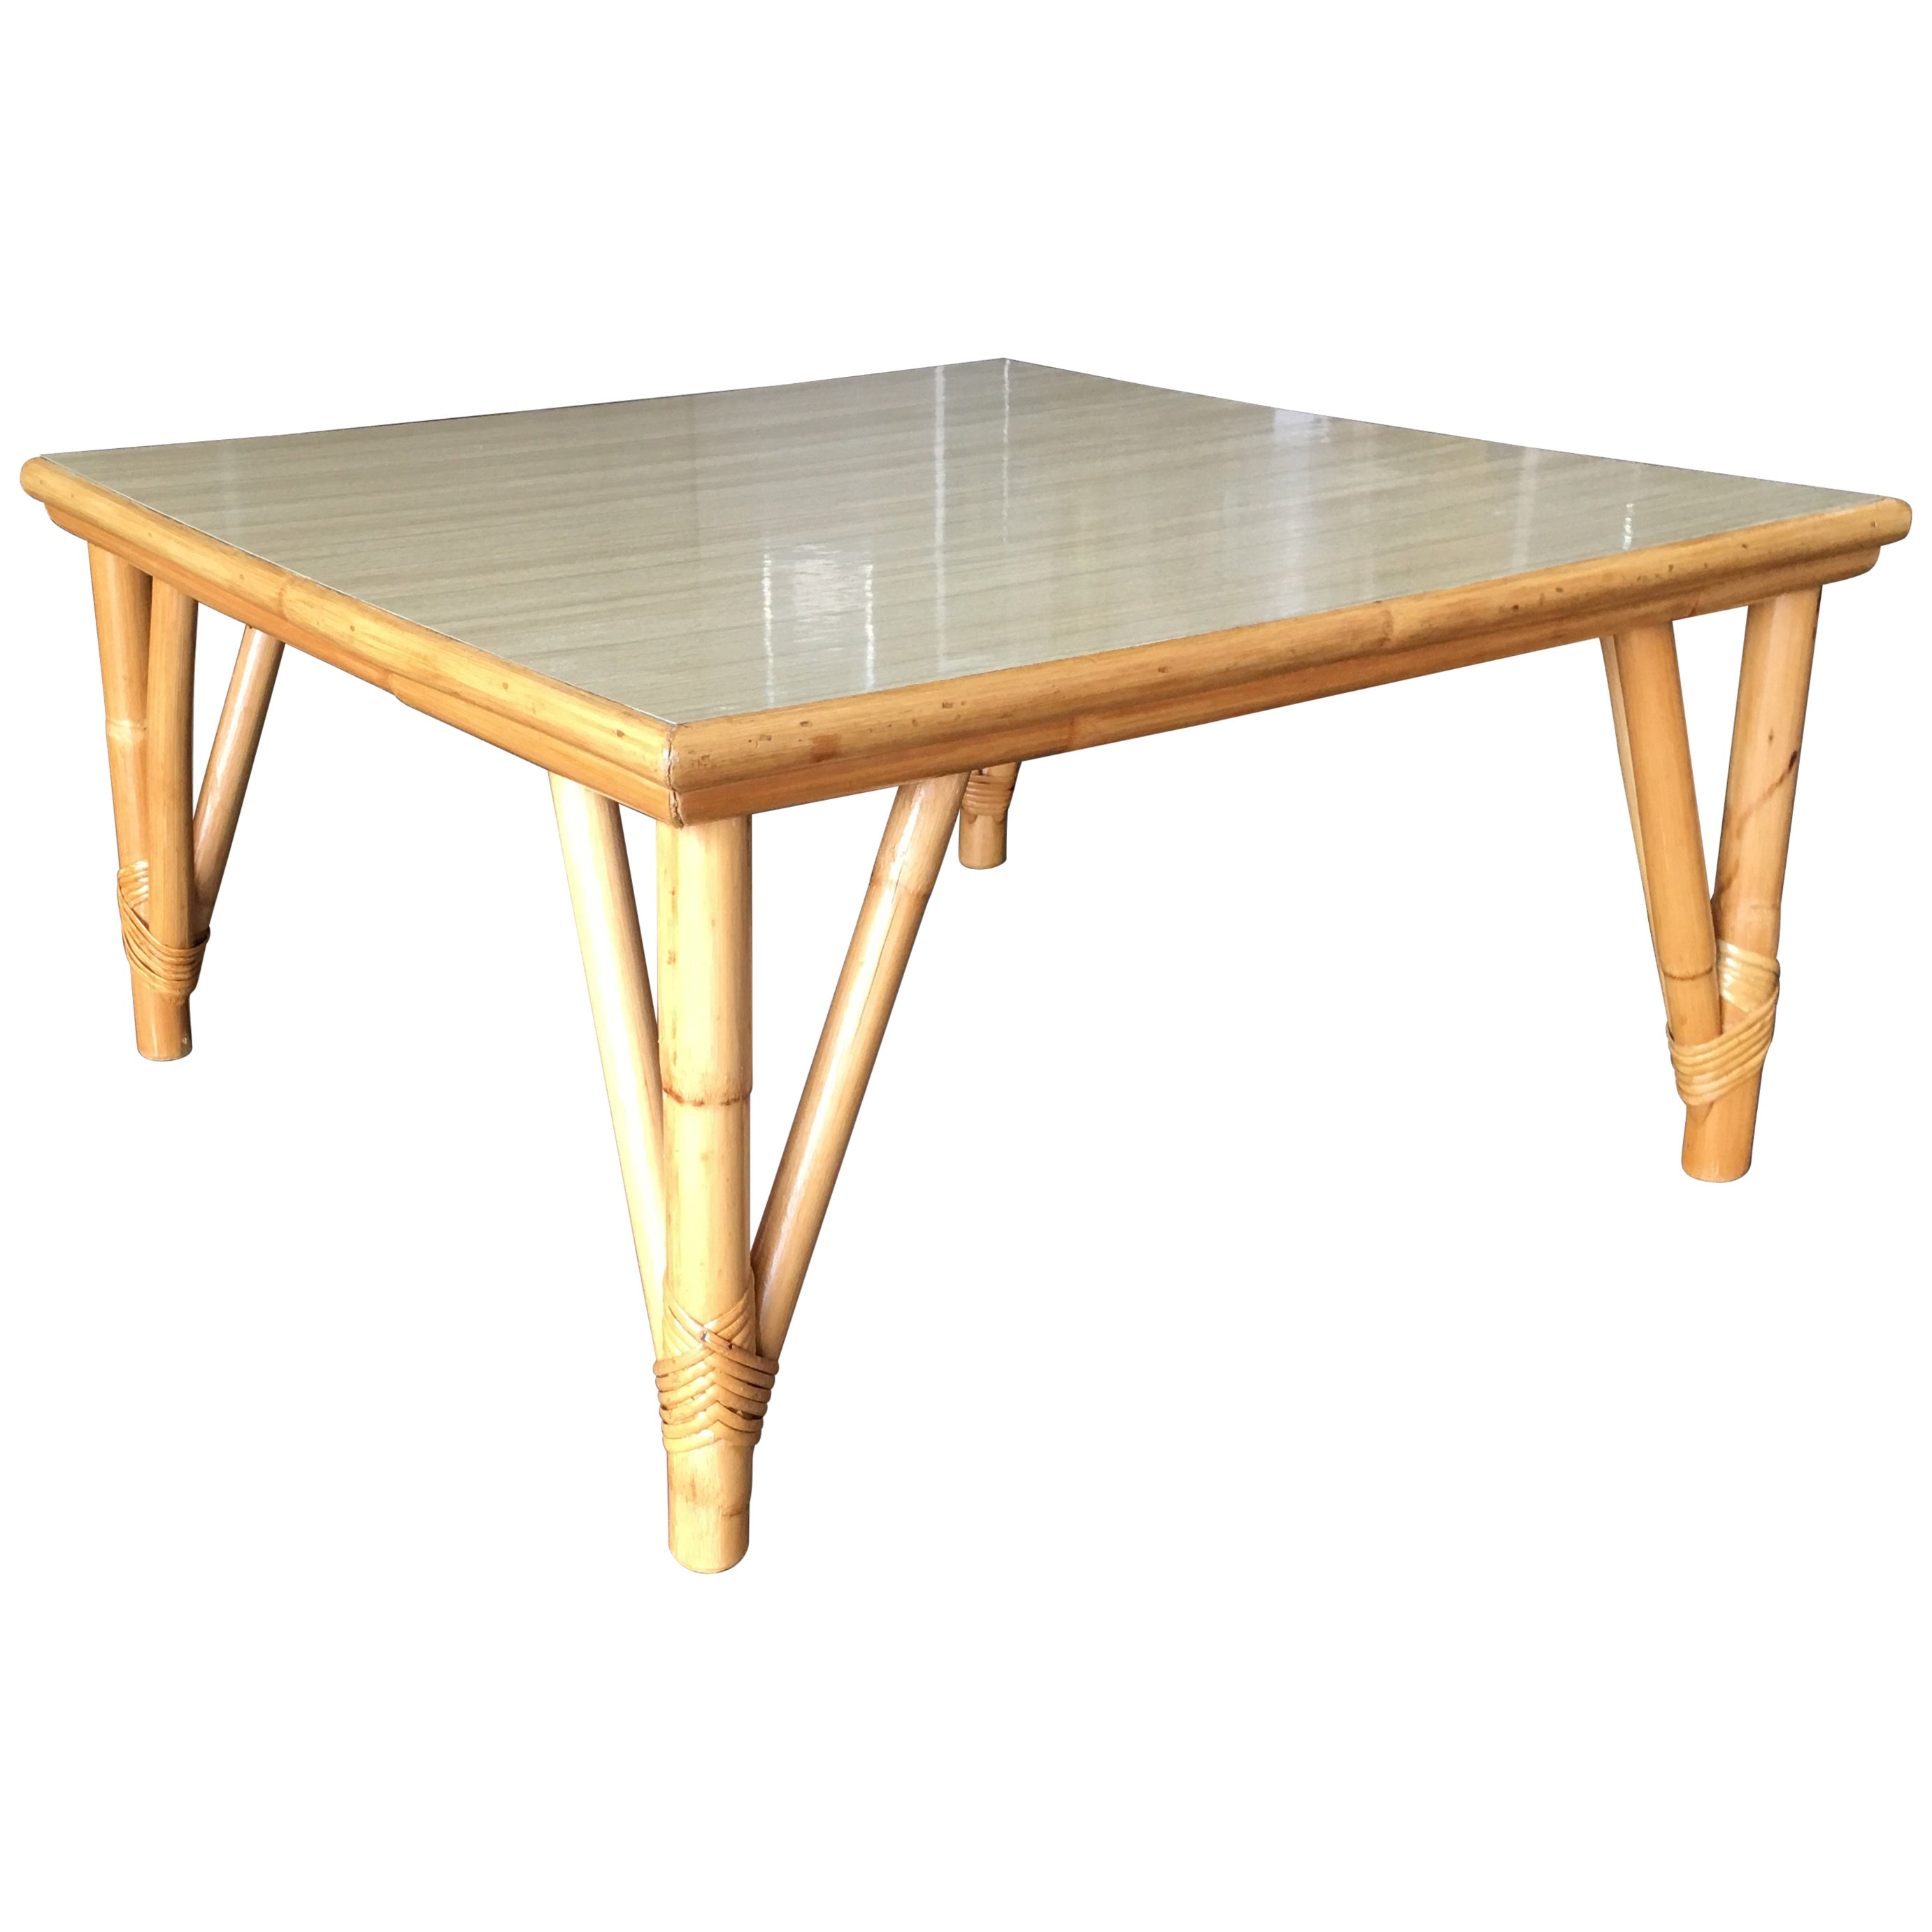 Large Square Rattan Coffee Table with Formica Top